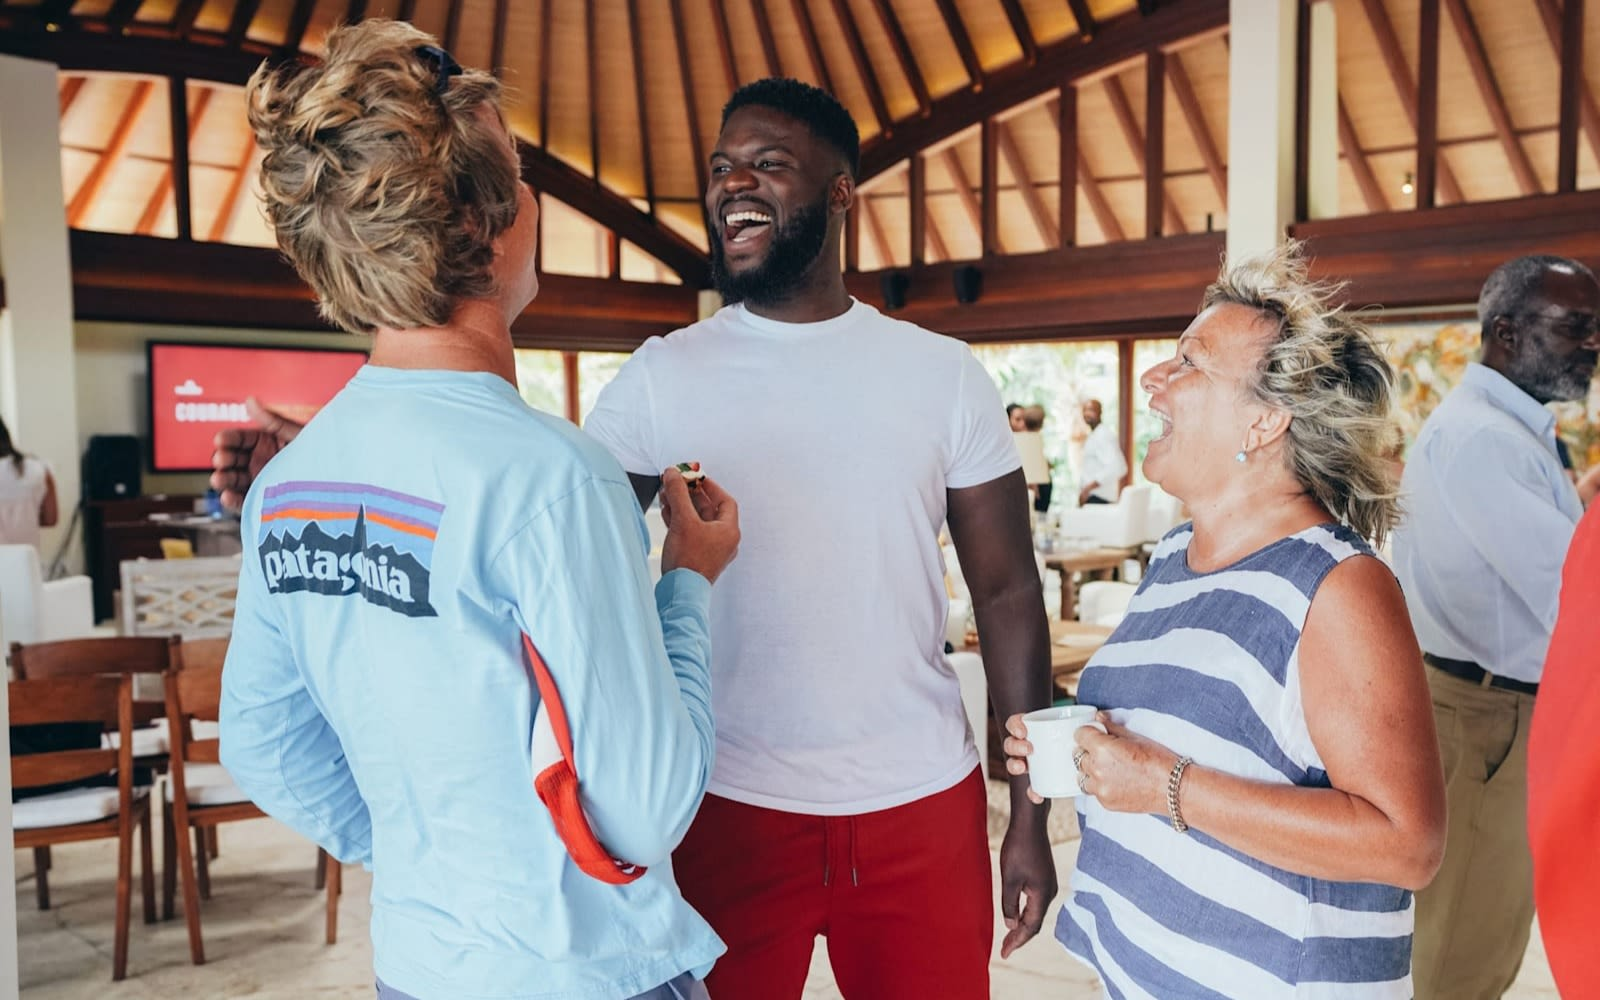 Karl Lokko speaking to man and woman at a Virgin Unite event on Necker Island